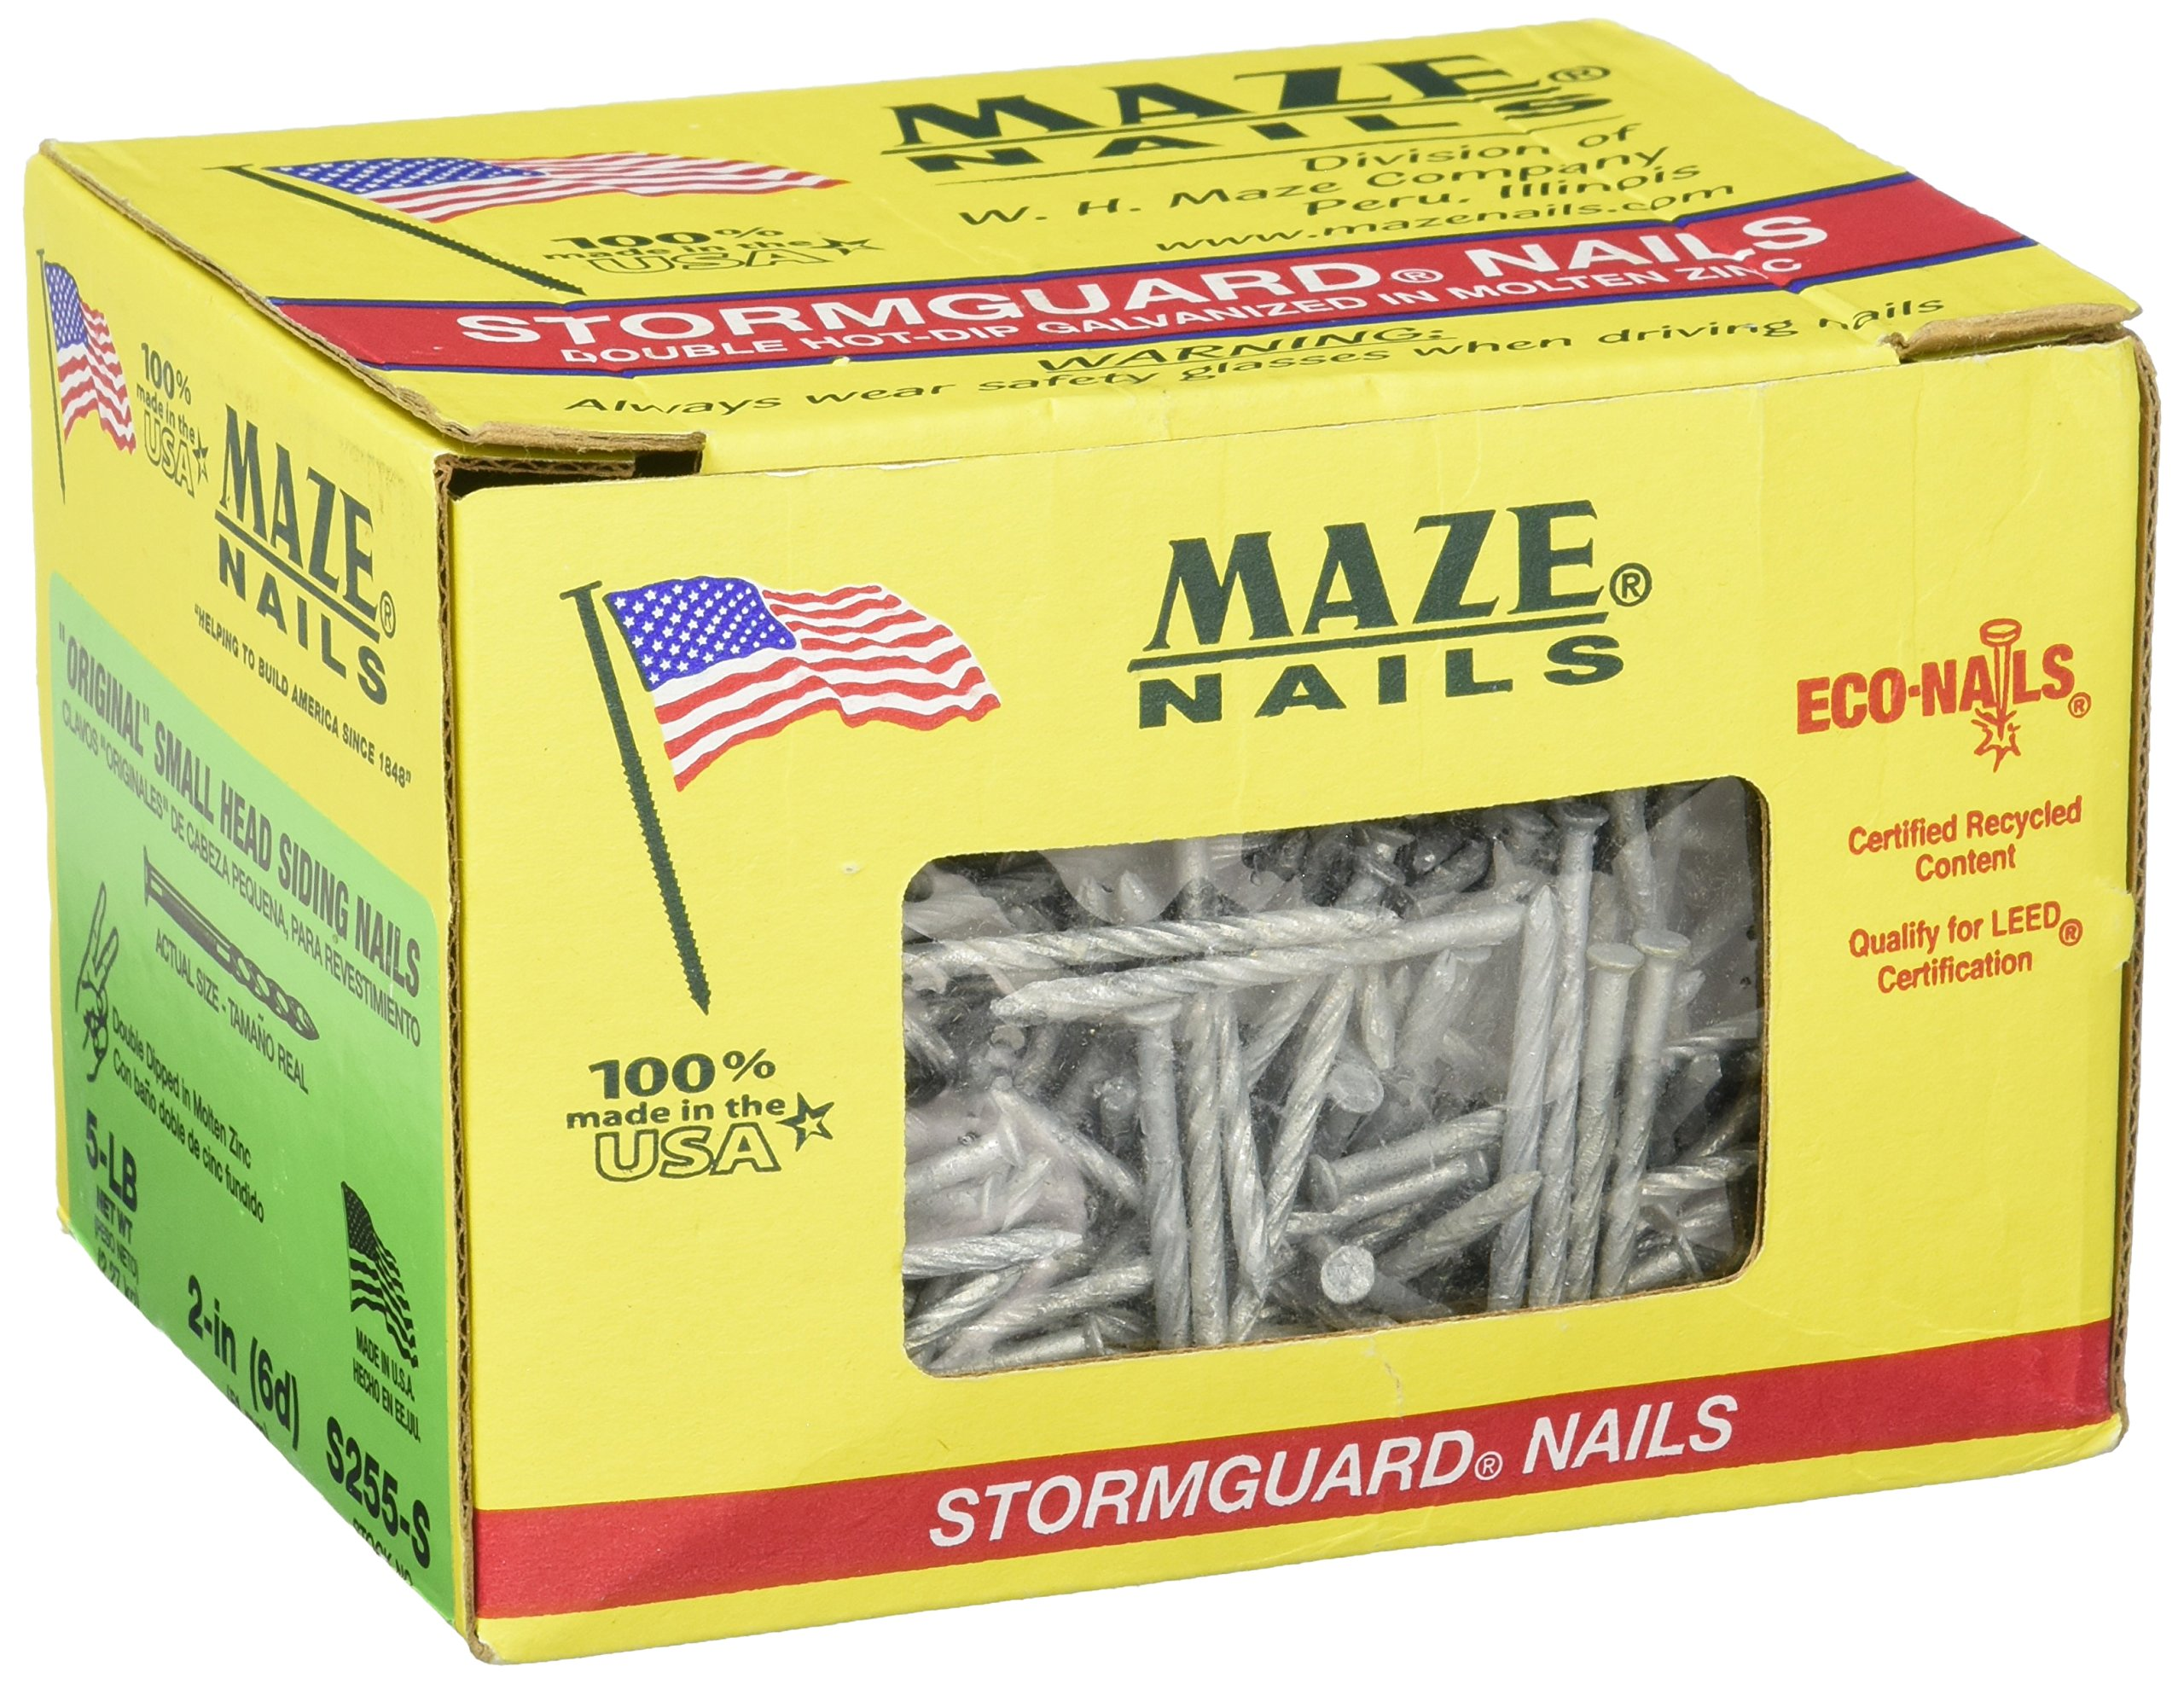 MAZE NAILS S255S-5 Double Hot Dipped Spiral Shank Small Head Siding Nail, 5-Pound 6D 2-Inch